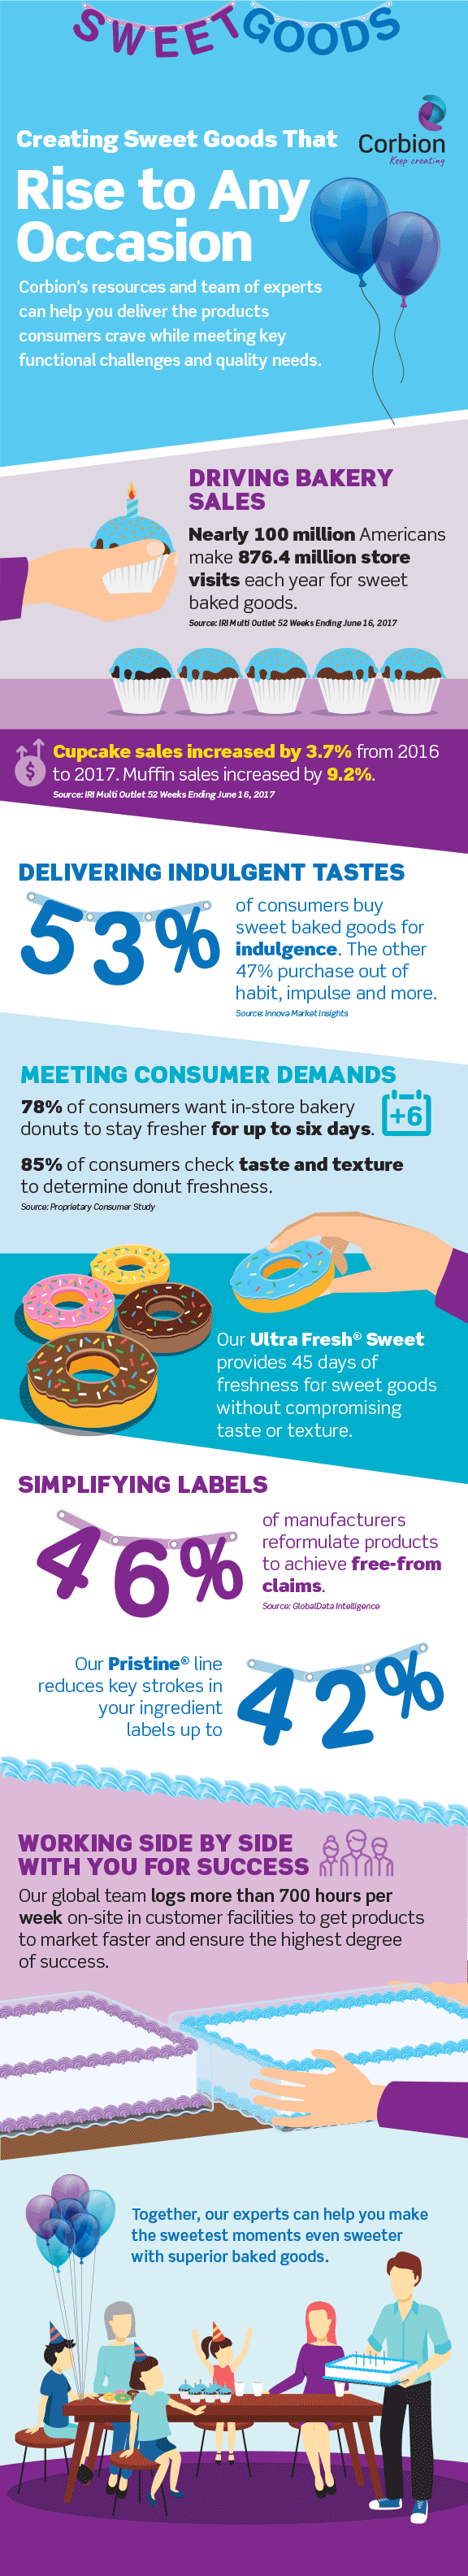 infographic for sweet goods